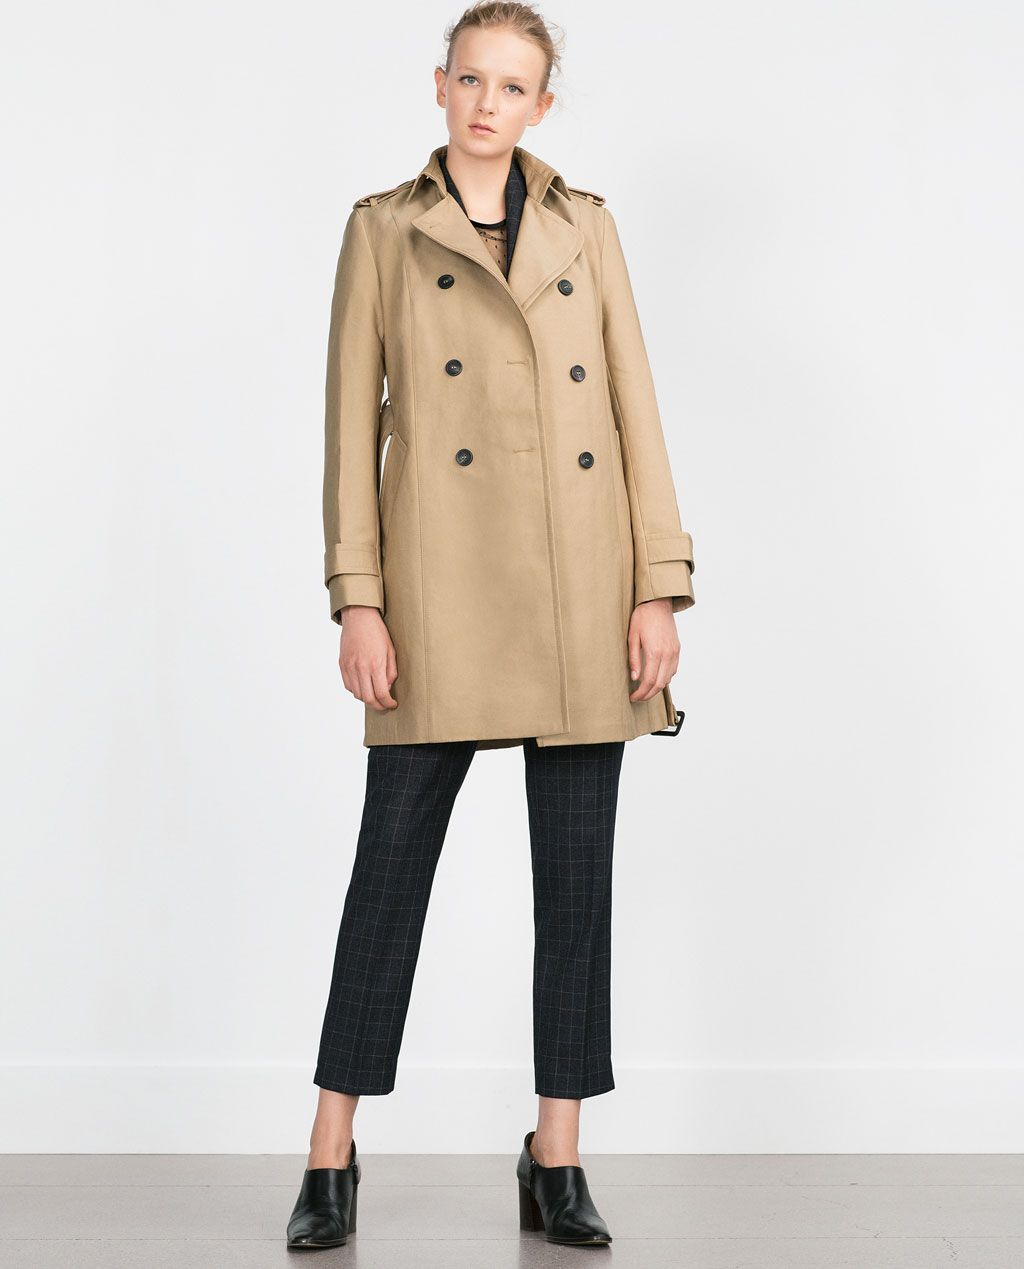 b4c59df0 Image 1 of WATER REPELLENT COTTON RAINCOAT from Zara   Clothes ...